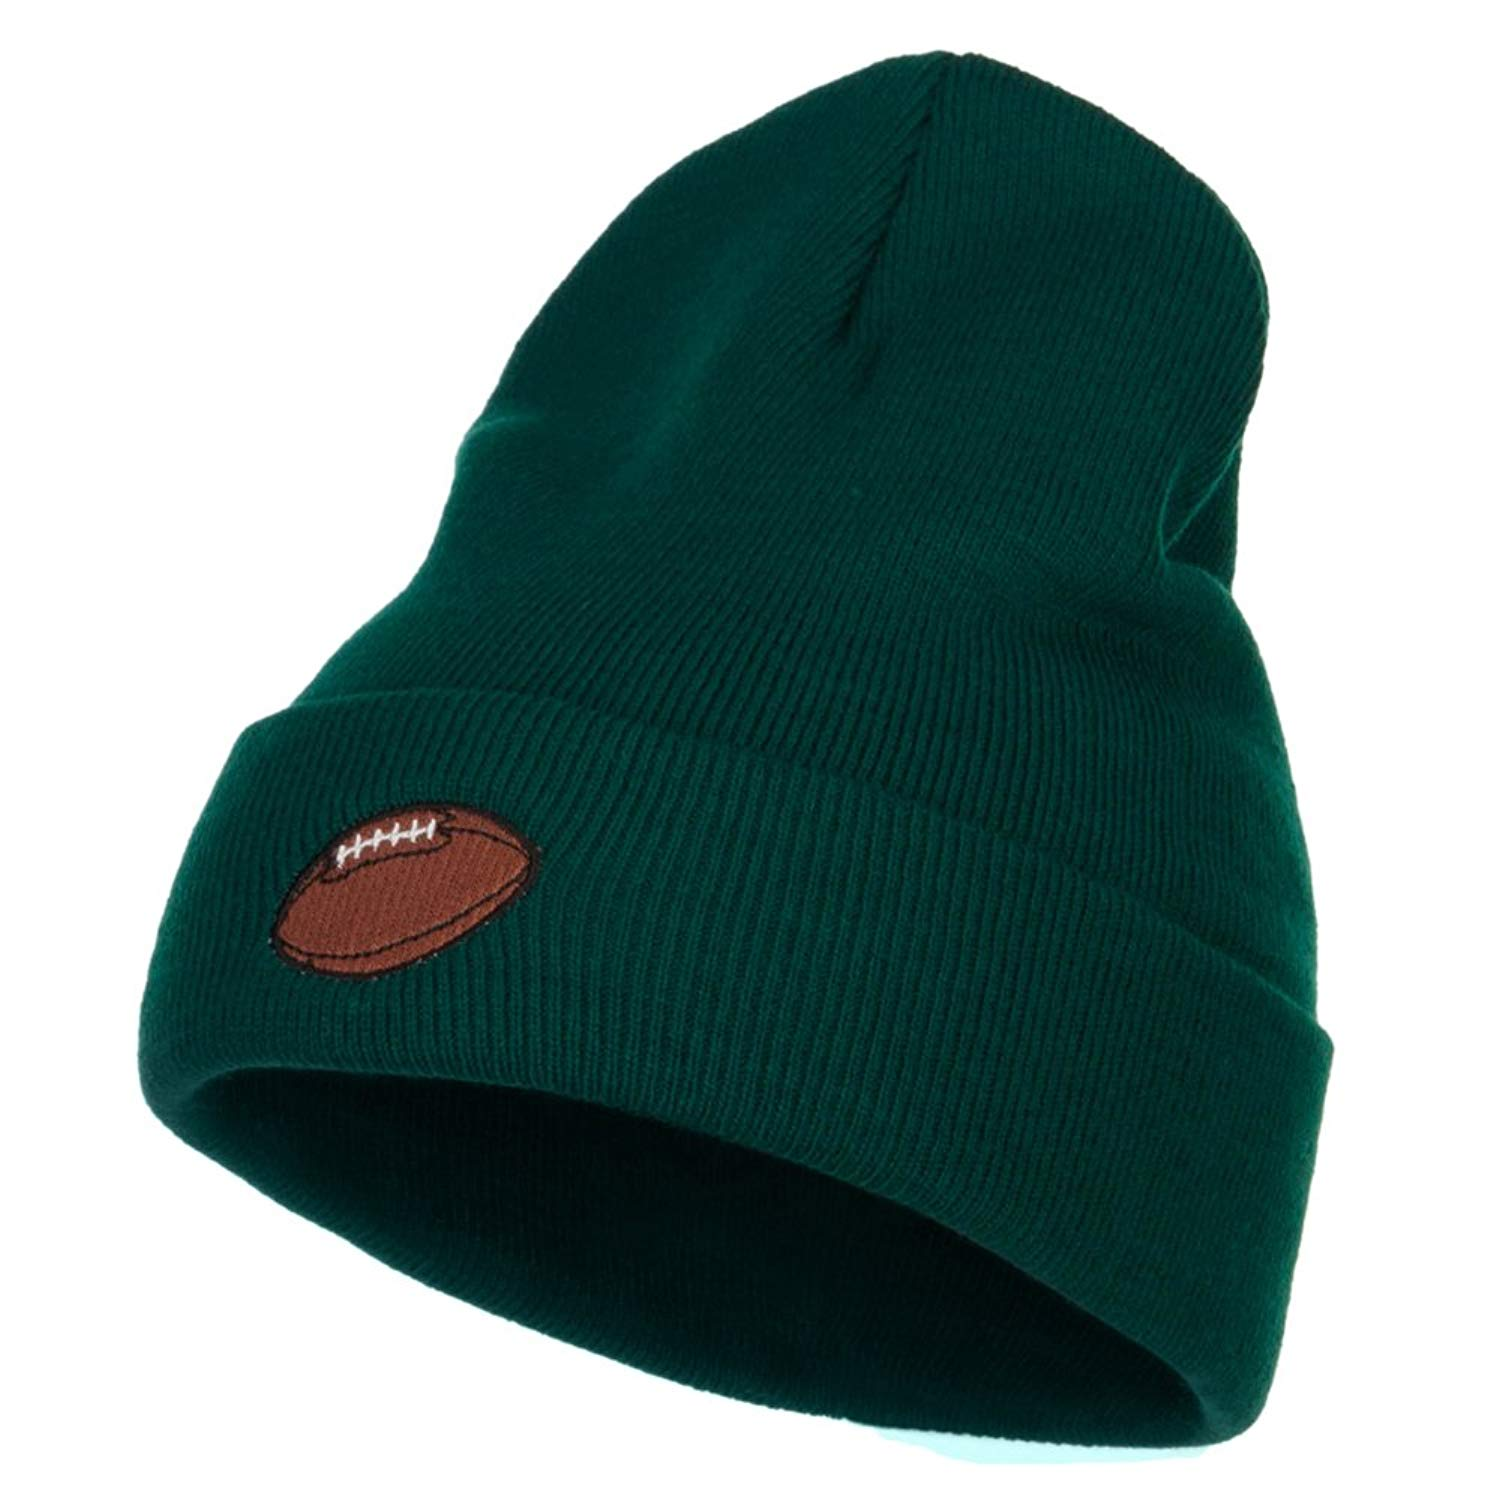 37b14b9b336 Get Quotations · Football Embroidered Long Beanie - Dk Green OSFM